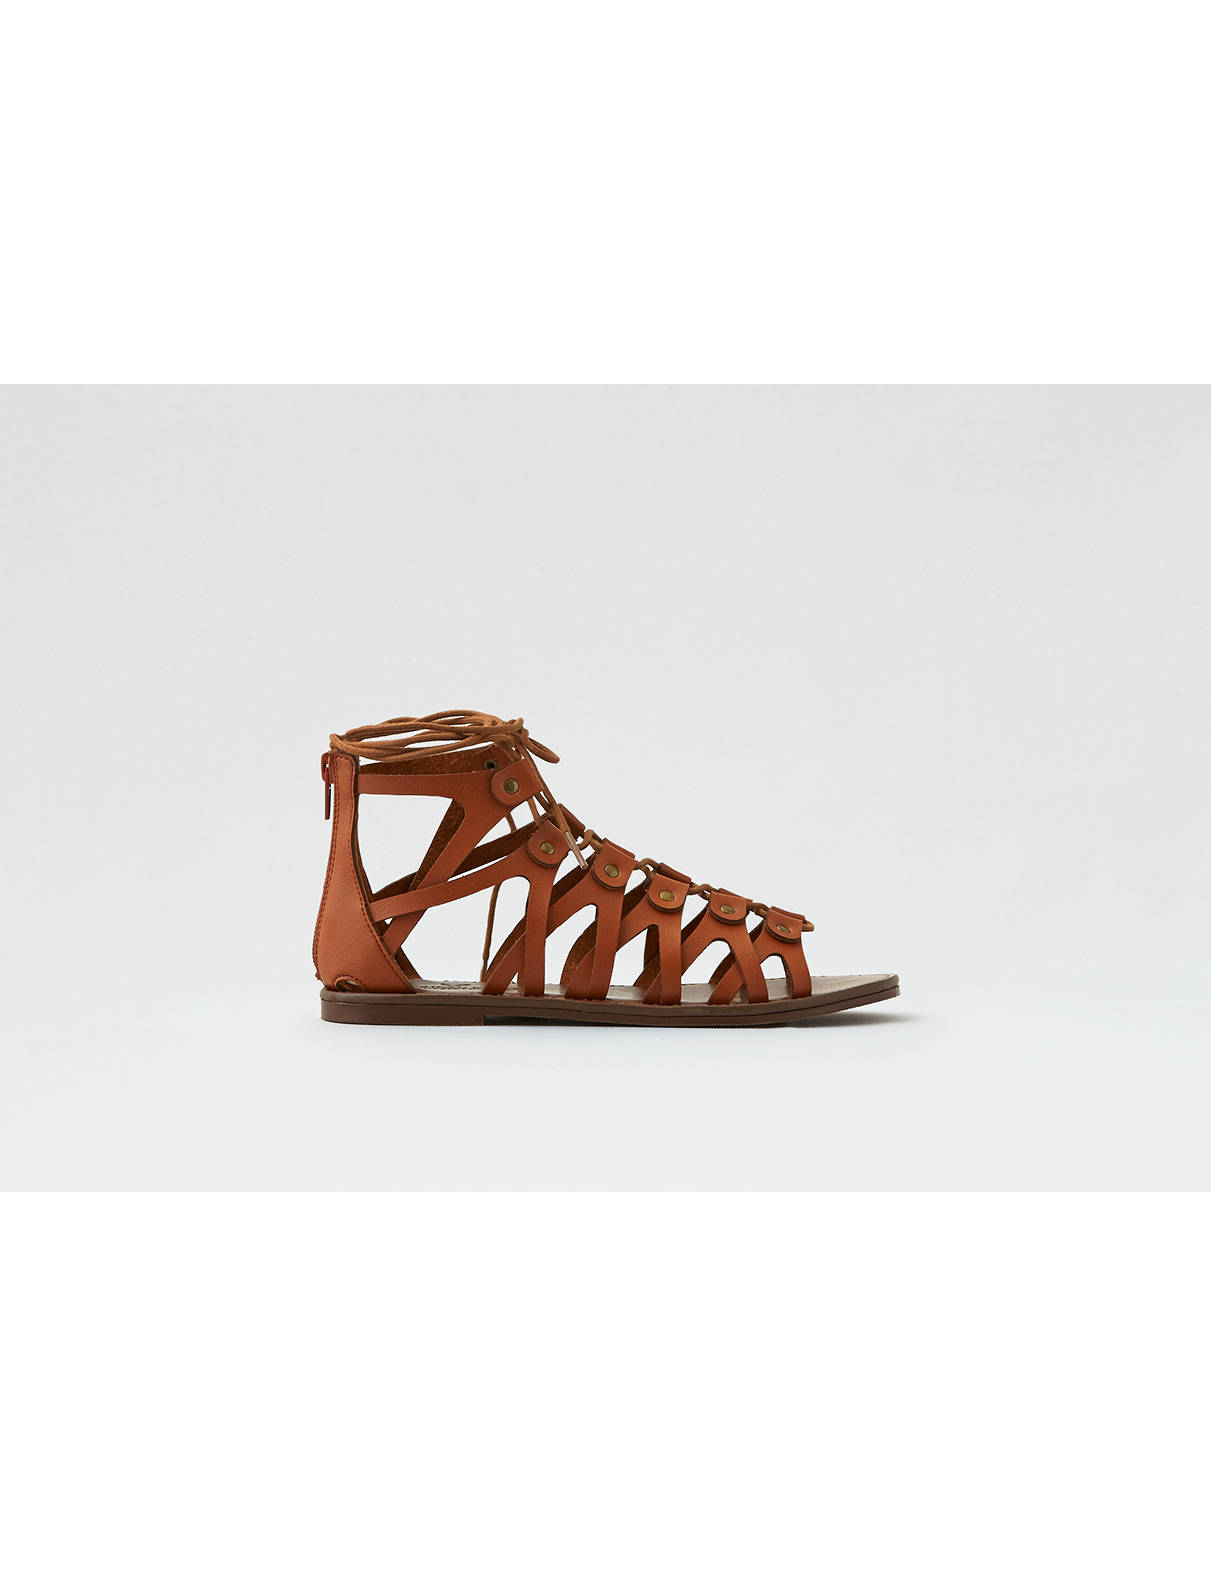 Womens sandals reviews - Display Product Reviews For Aeo Lace Up Sandal